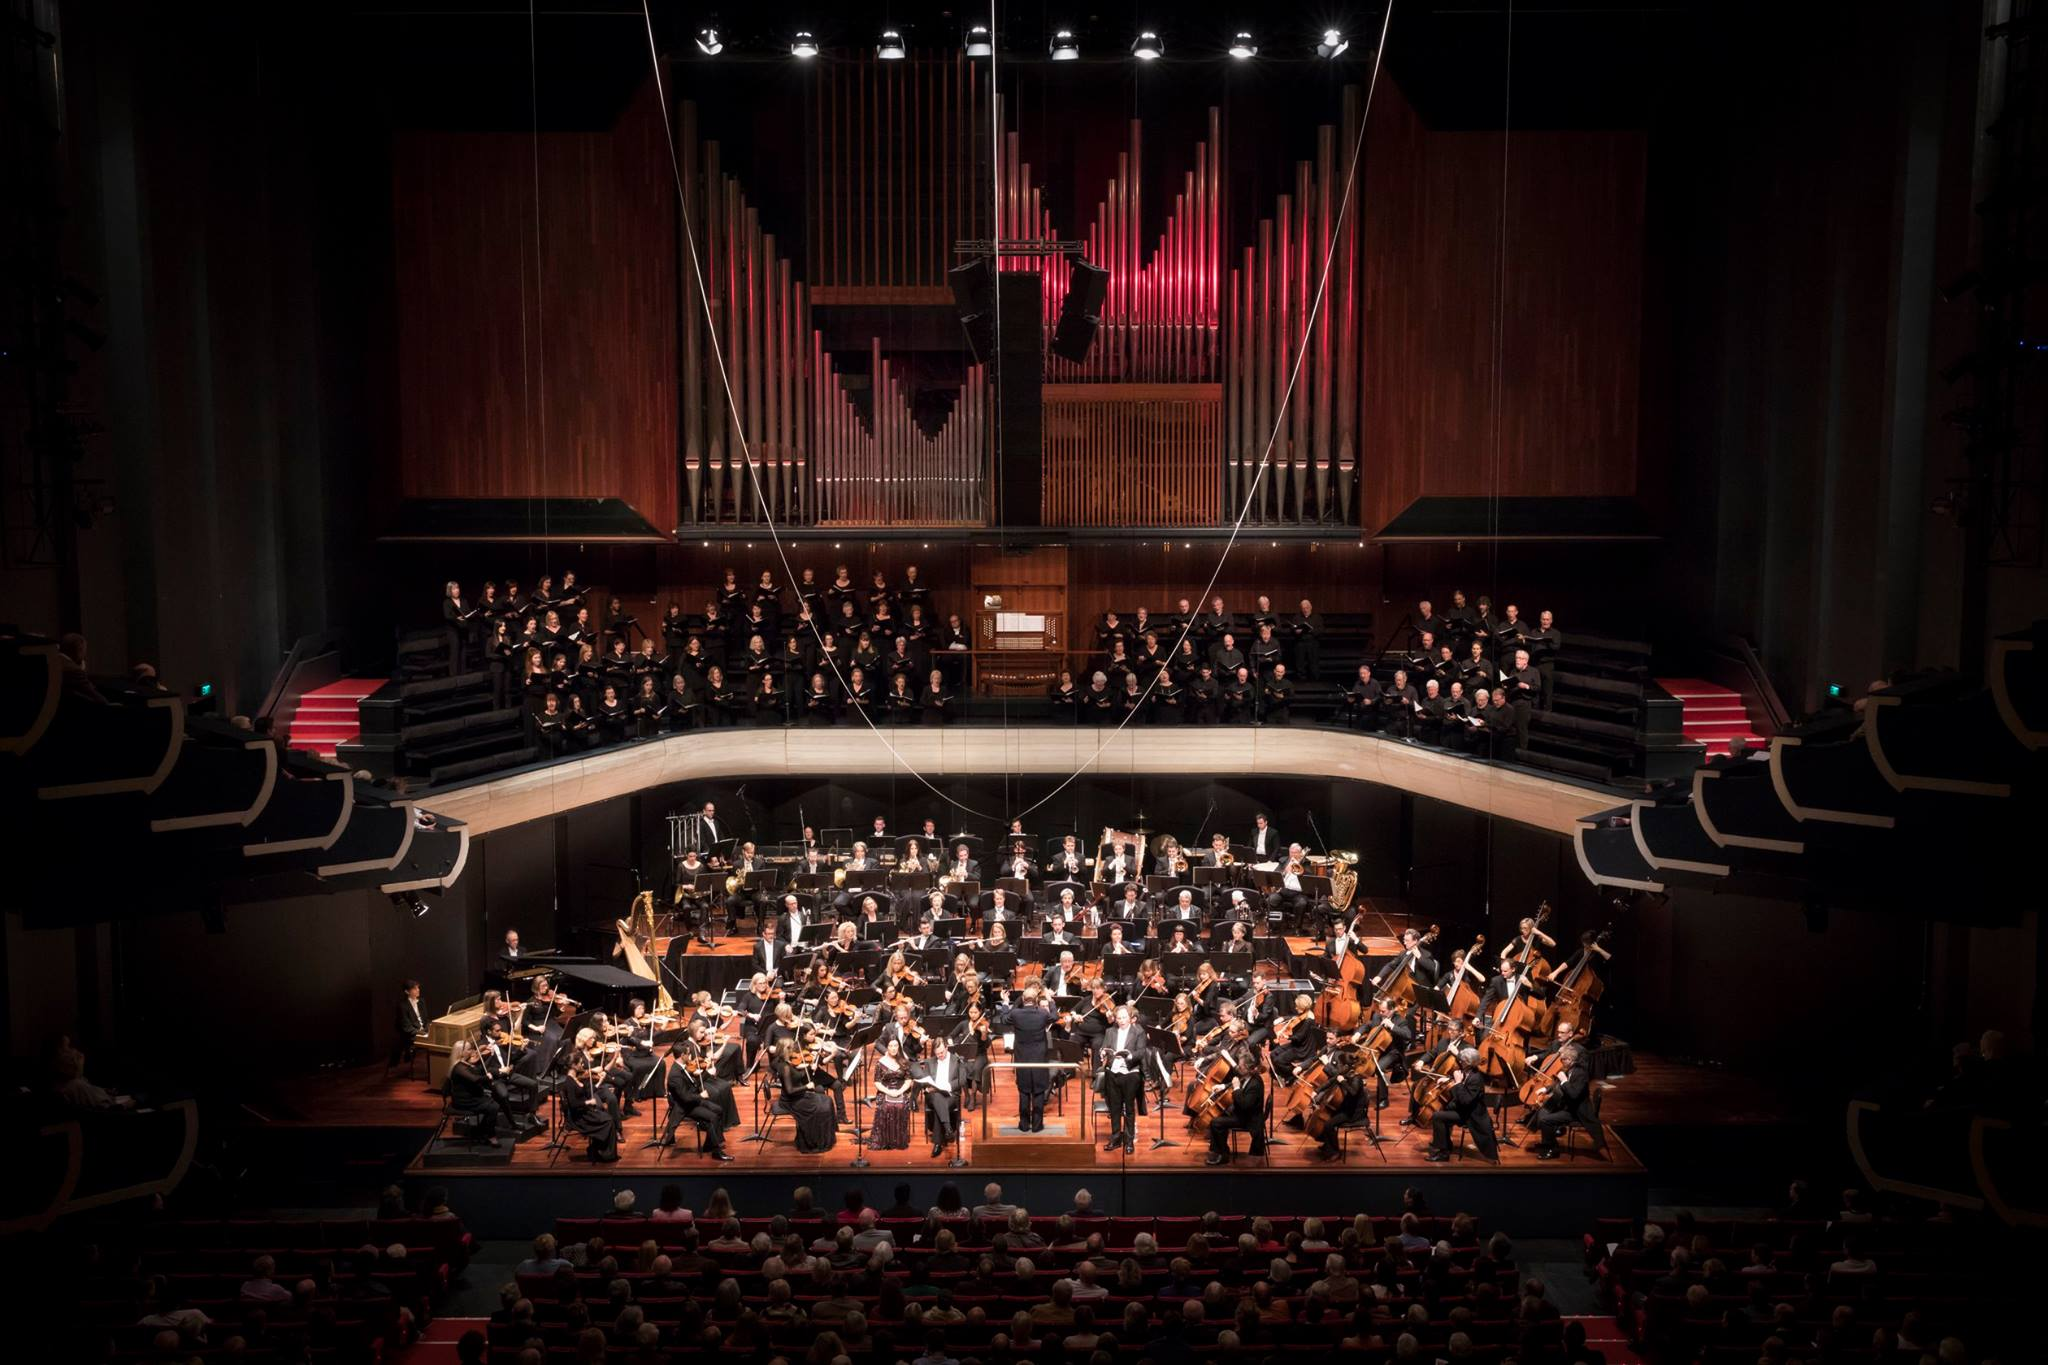 some of the finest music acoustics in the Southern Hemisphere